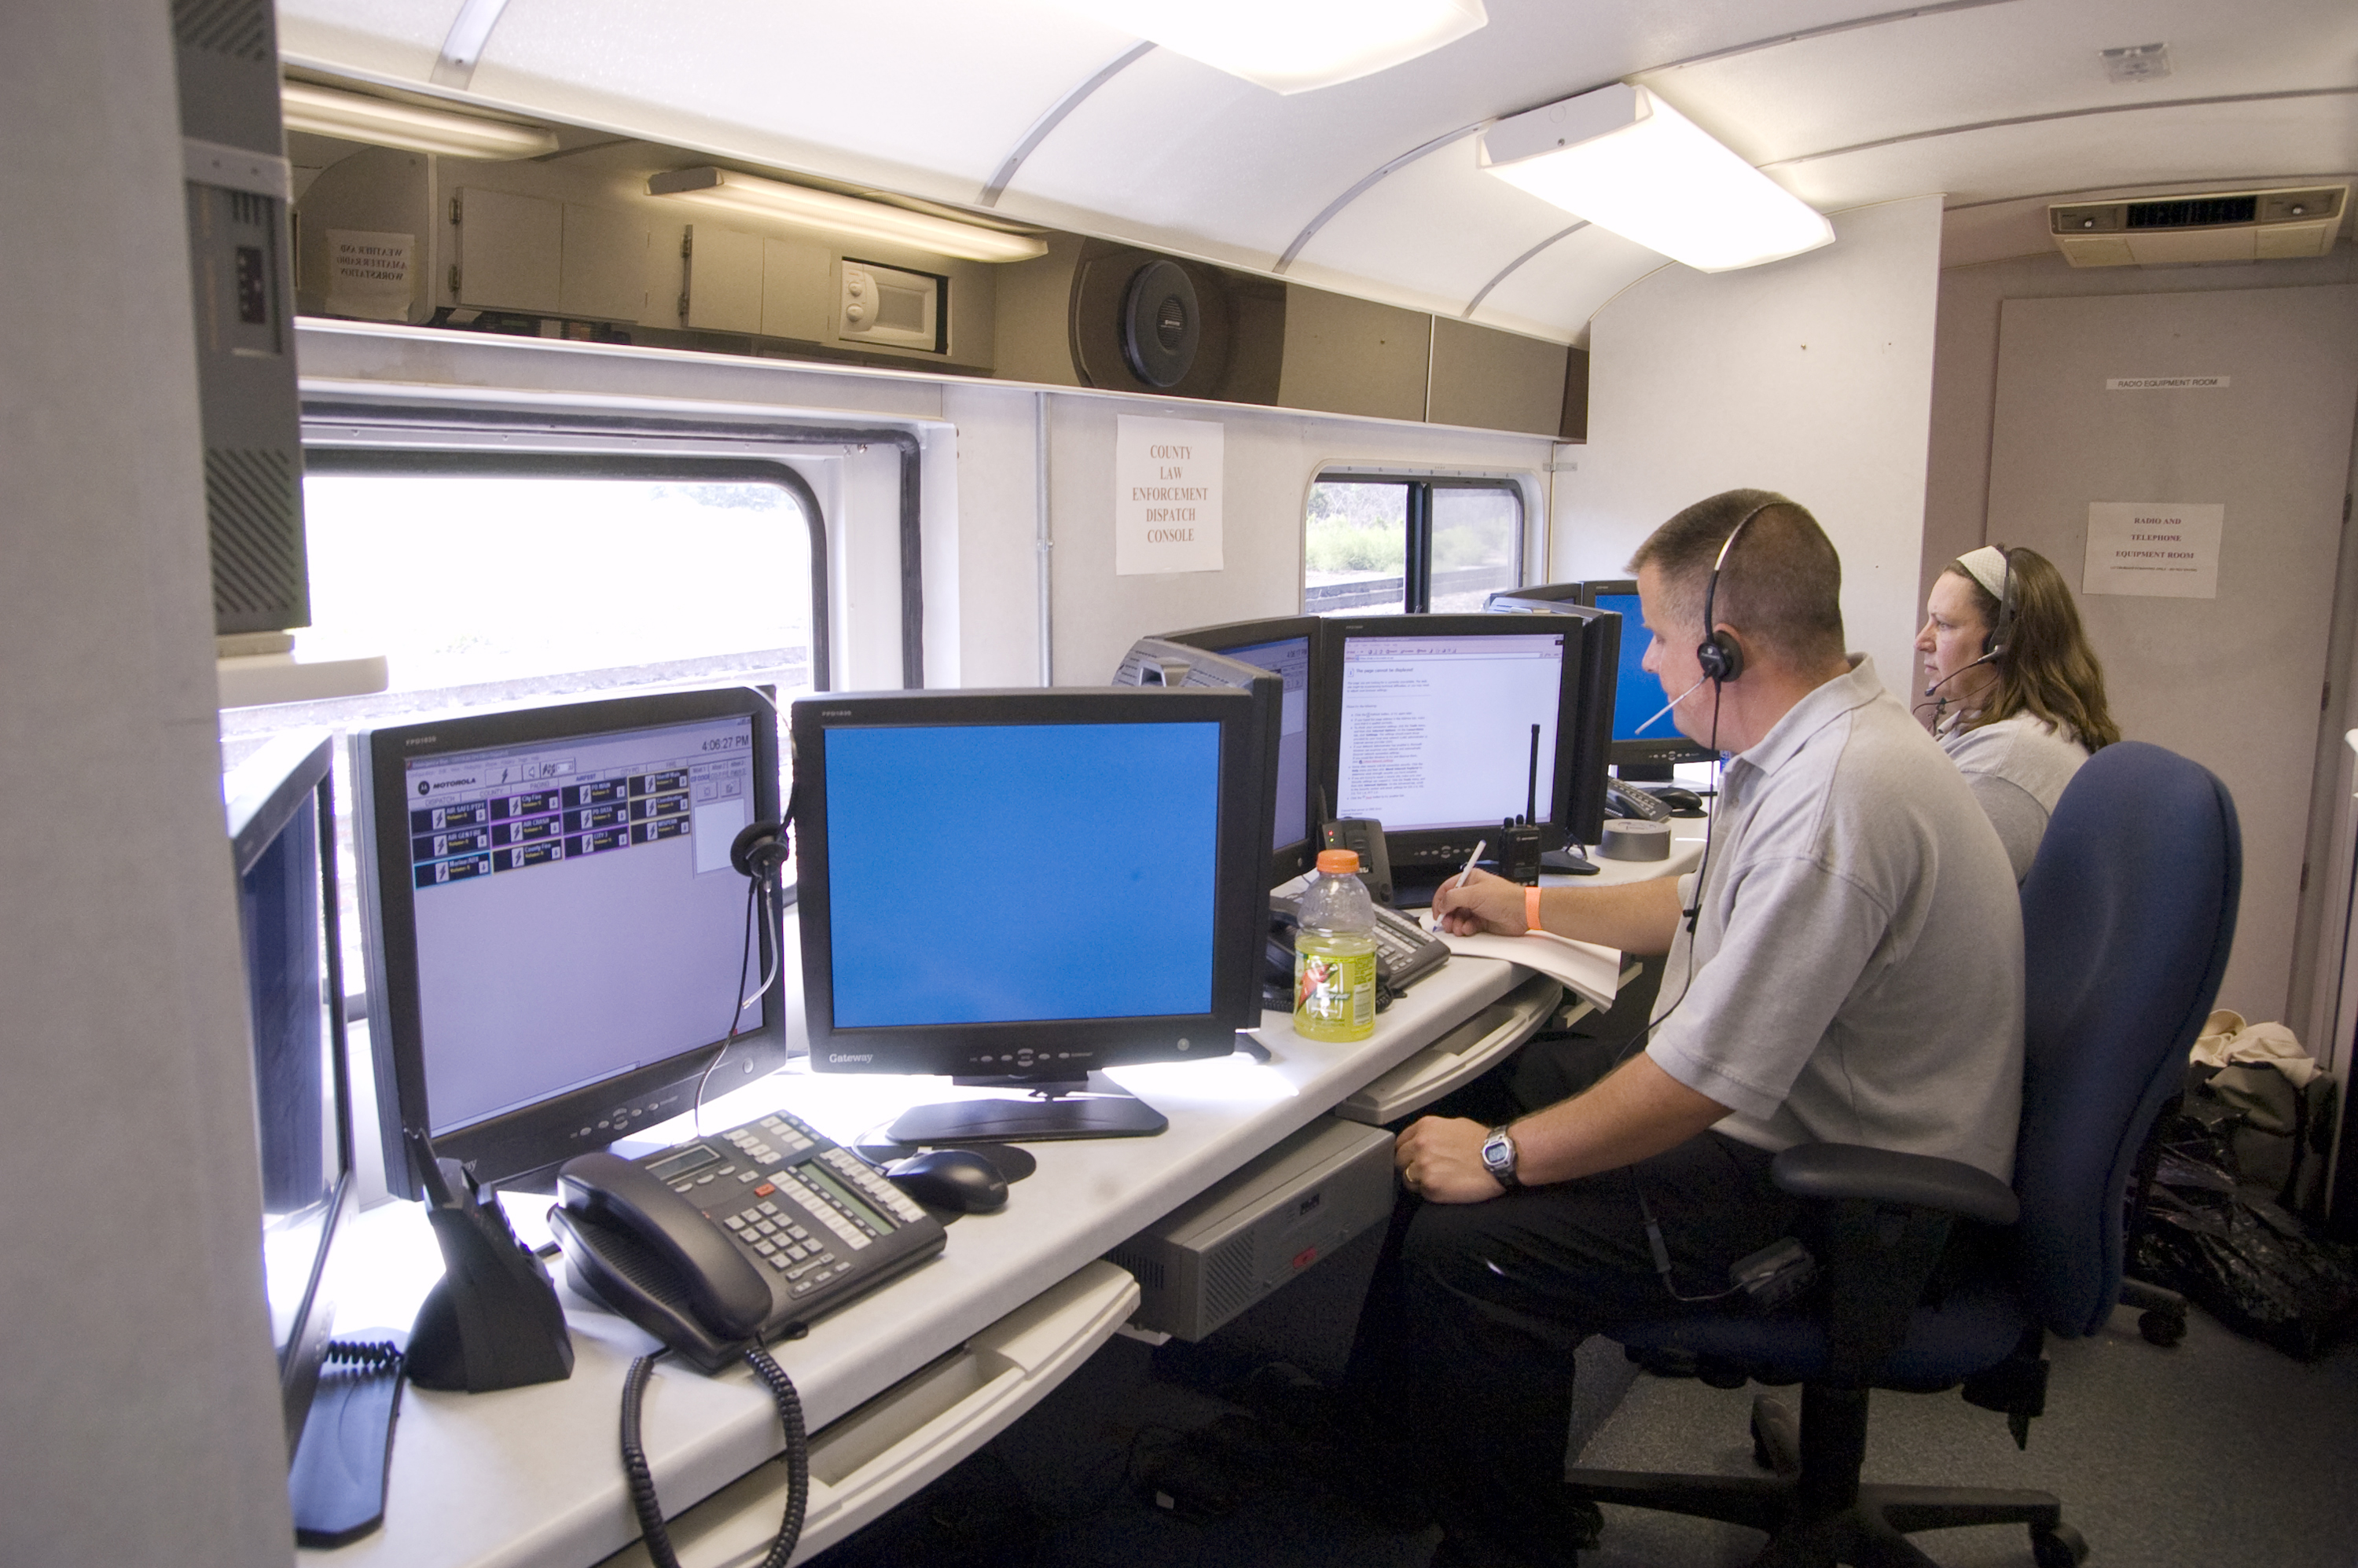 File Fema 31884 La Crosse Incident Command Center Interior And Workers Jpg